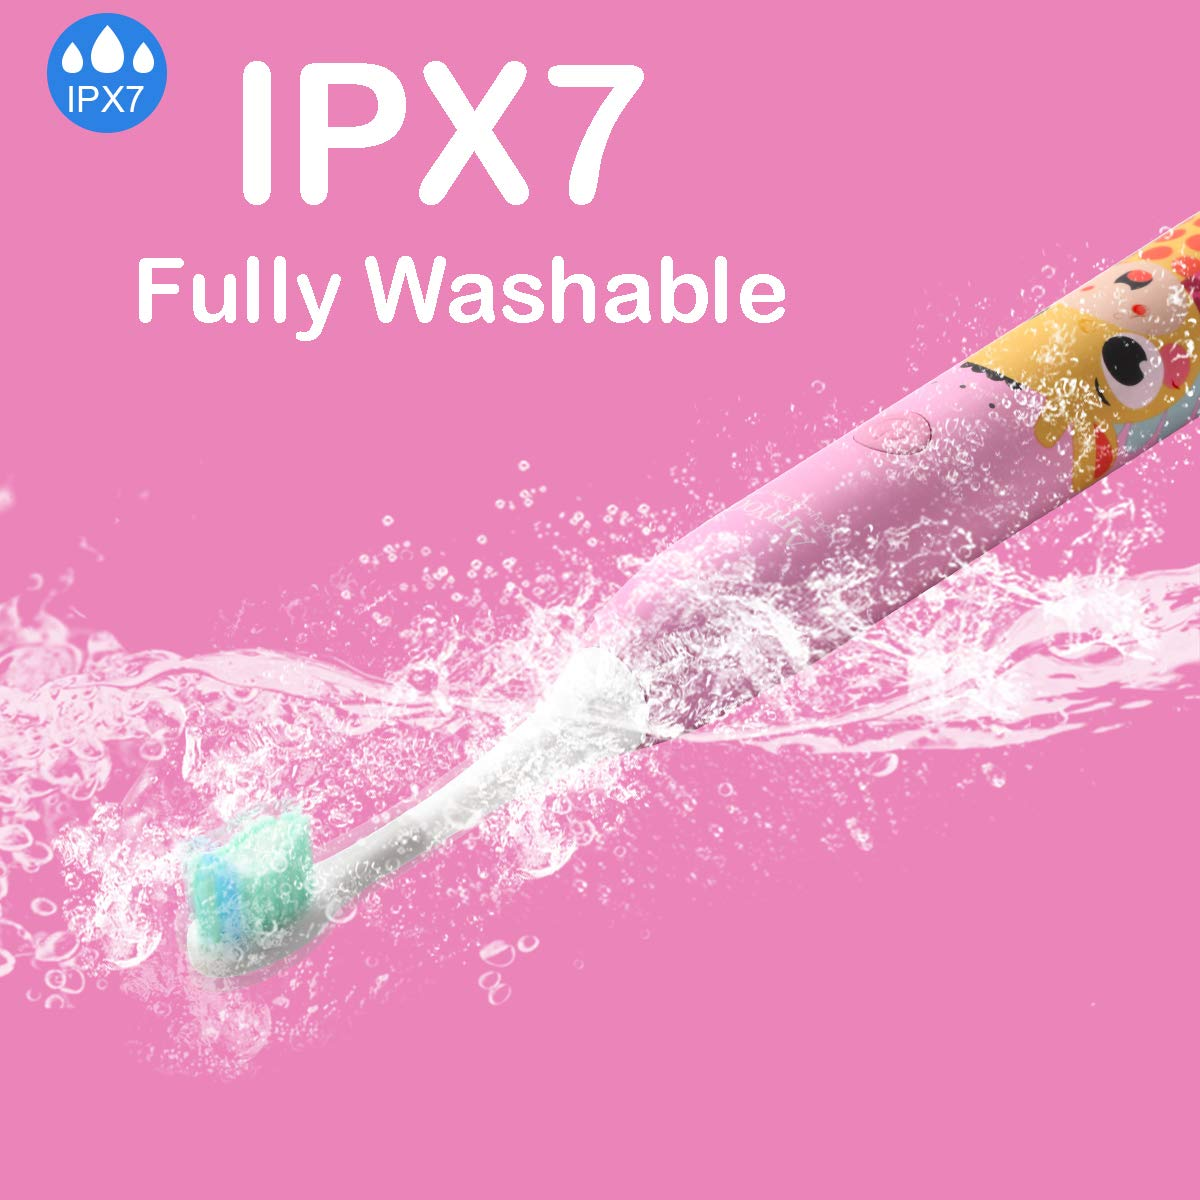 Apiyoo Kids Electric Toothbrush, A7 Sonic Wireless Rechargeable Toothbrush, IPX7 Waterproof with 3 Brushing Modes, 2 Min Smart Timer for Kids. (Pink) by Apiyoo (Image #7)